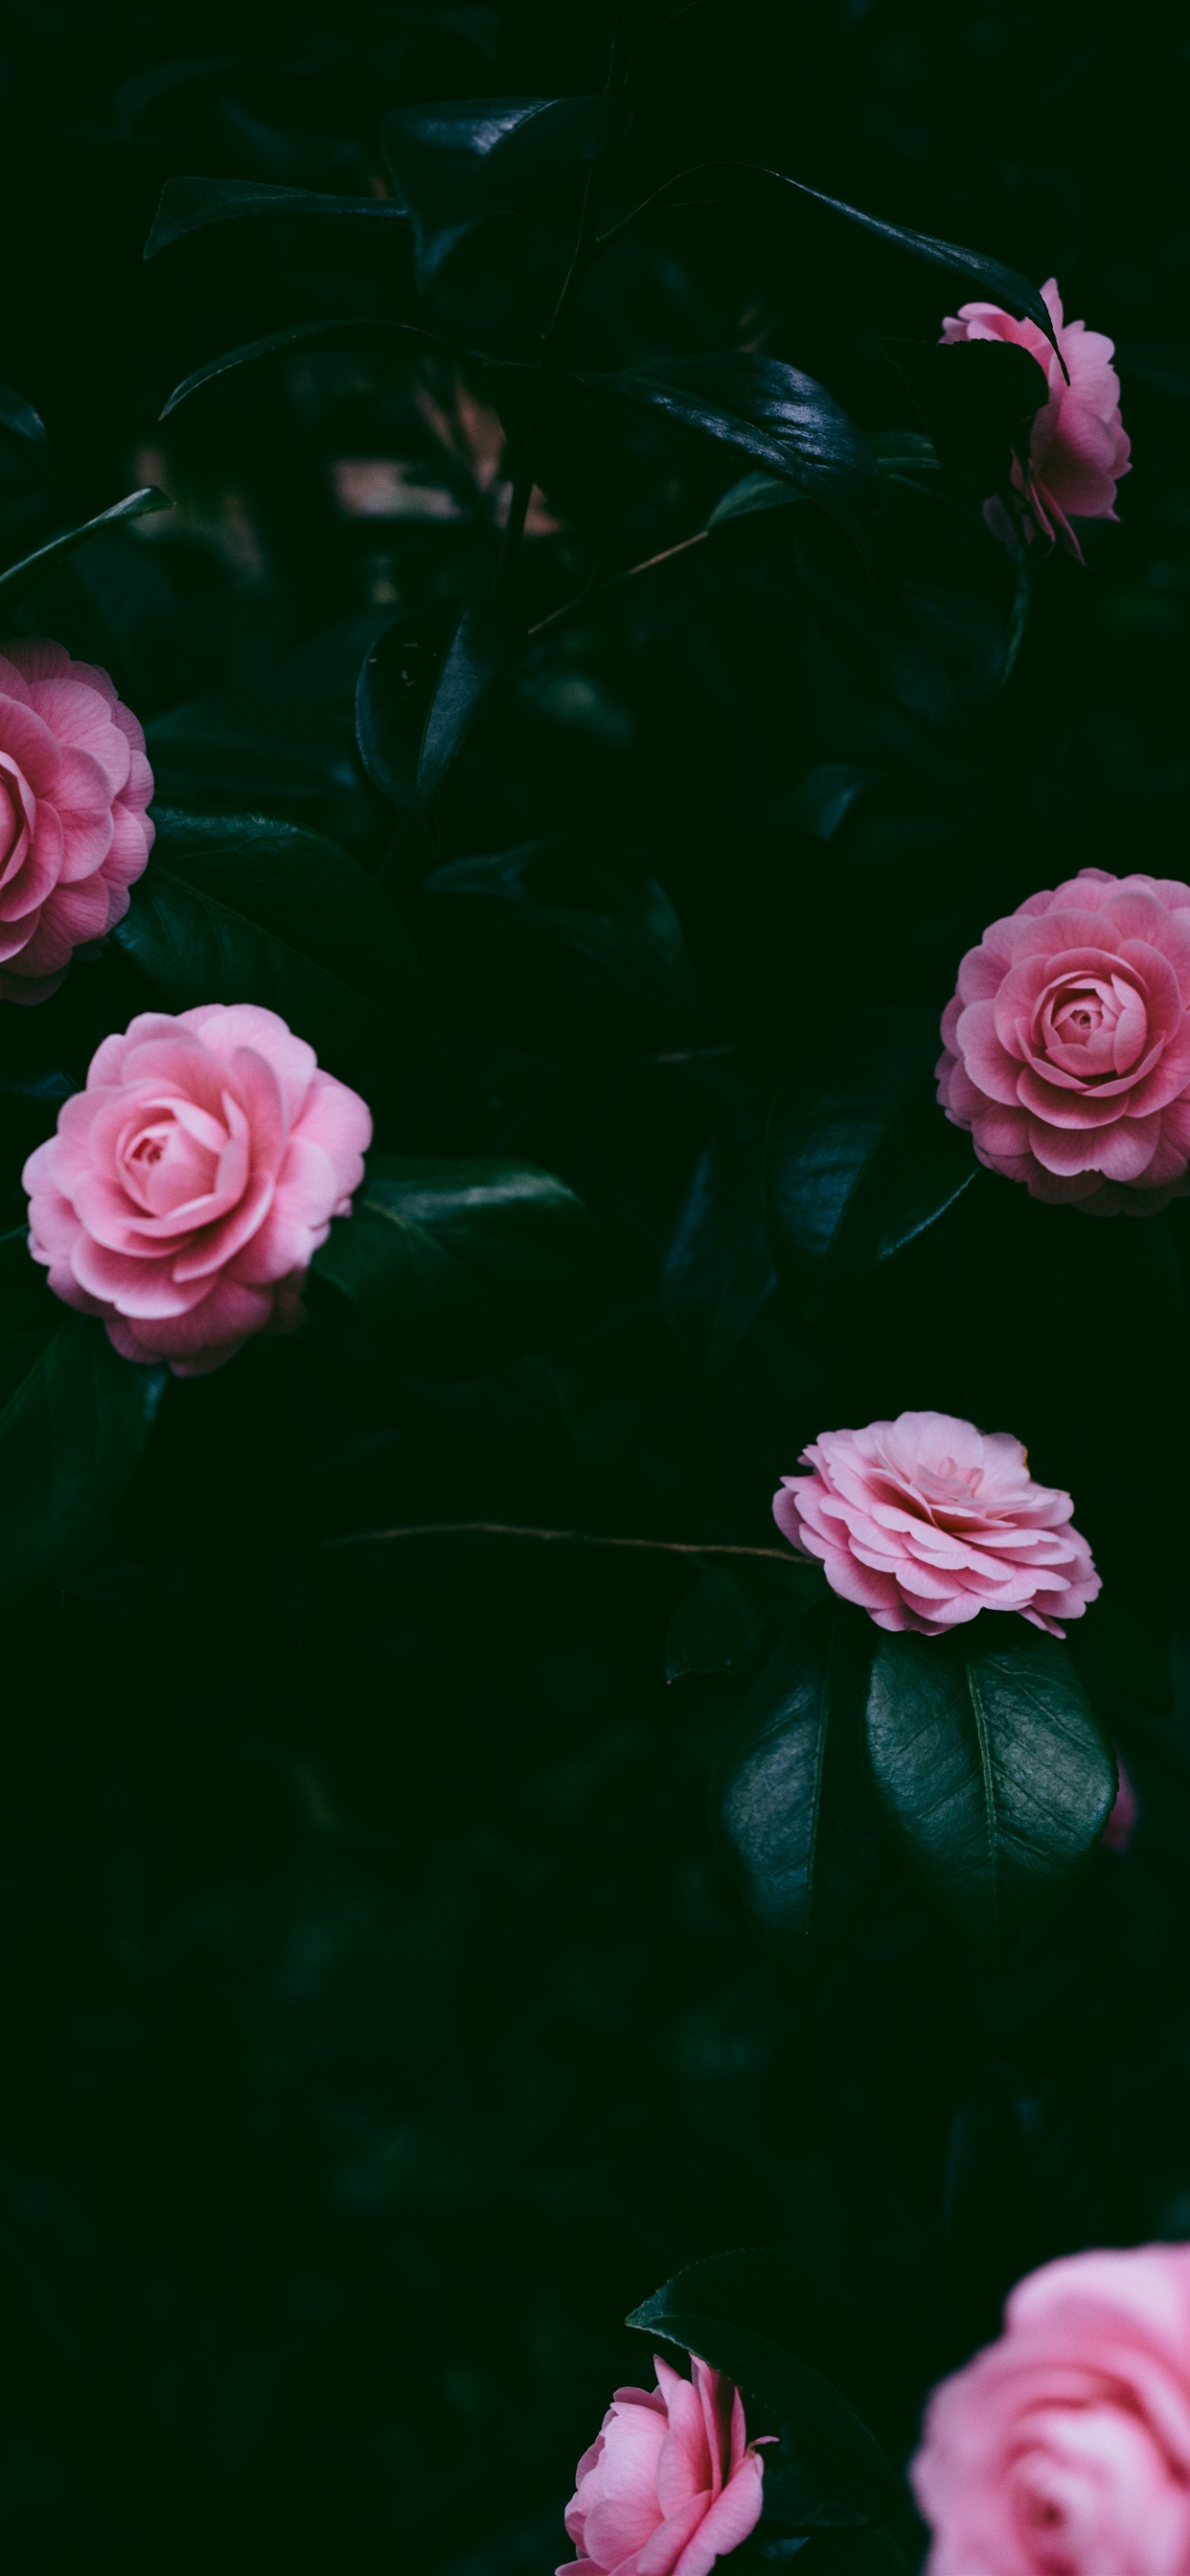 Many Pink Roses Iphone Xs Max X 876543gs Wallpaper Download